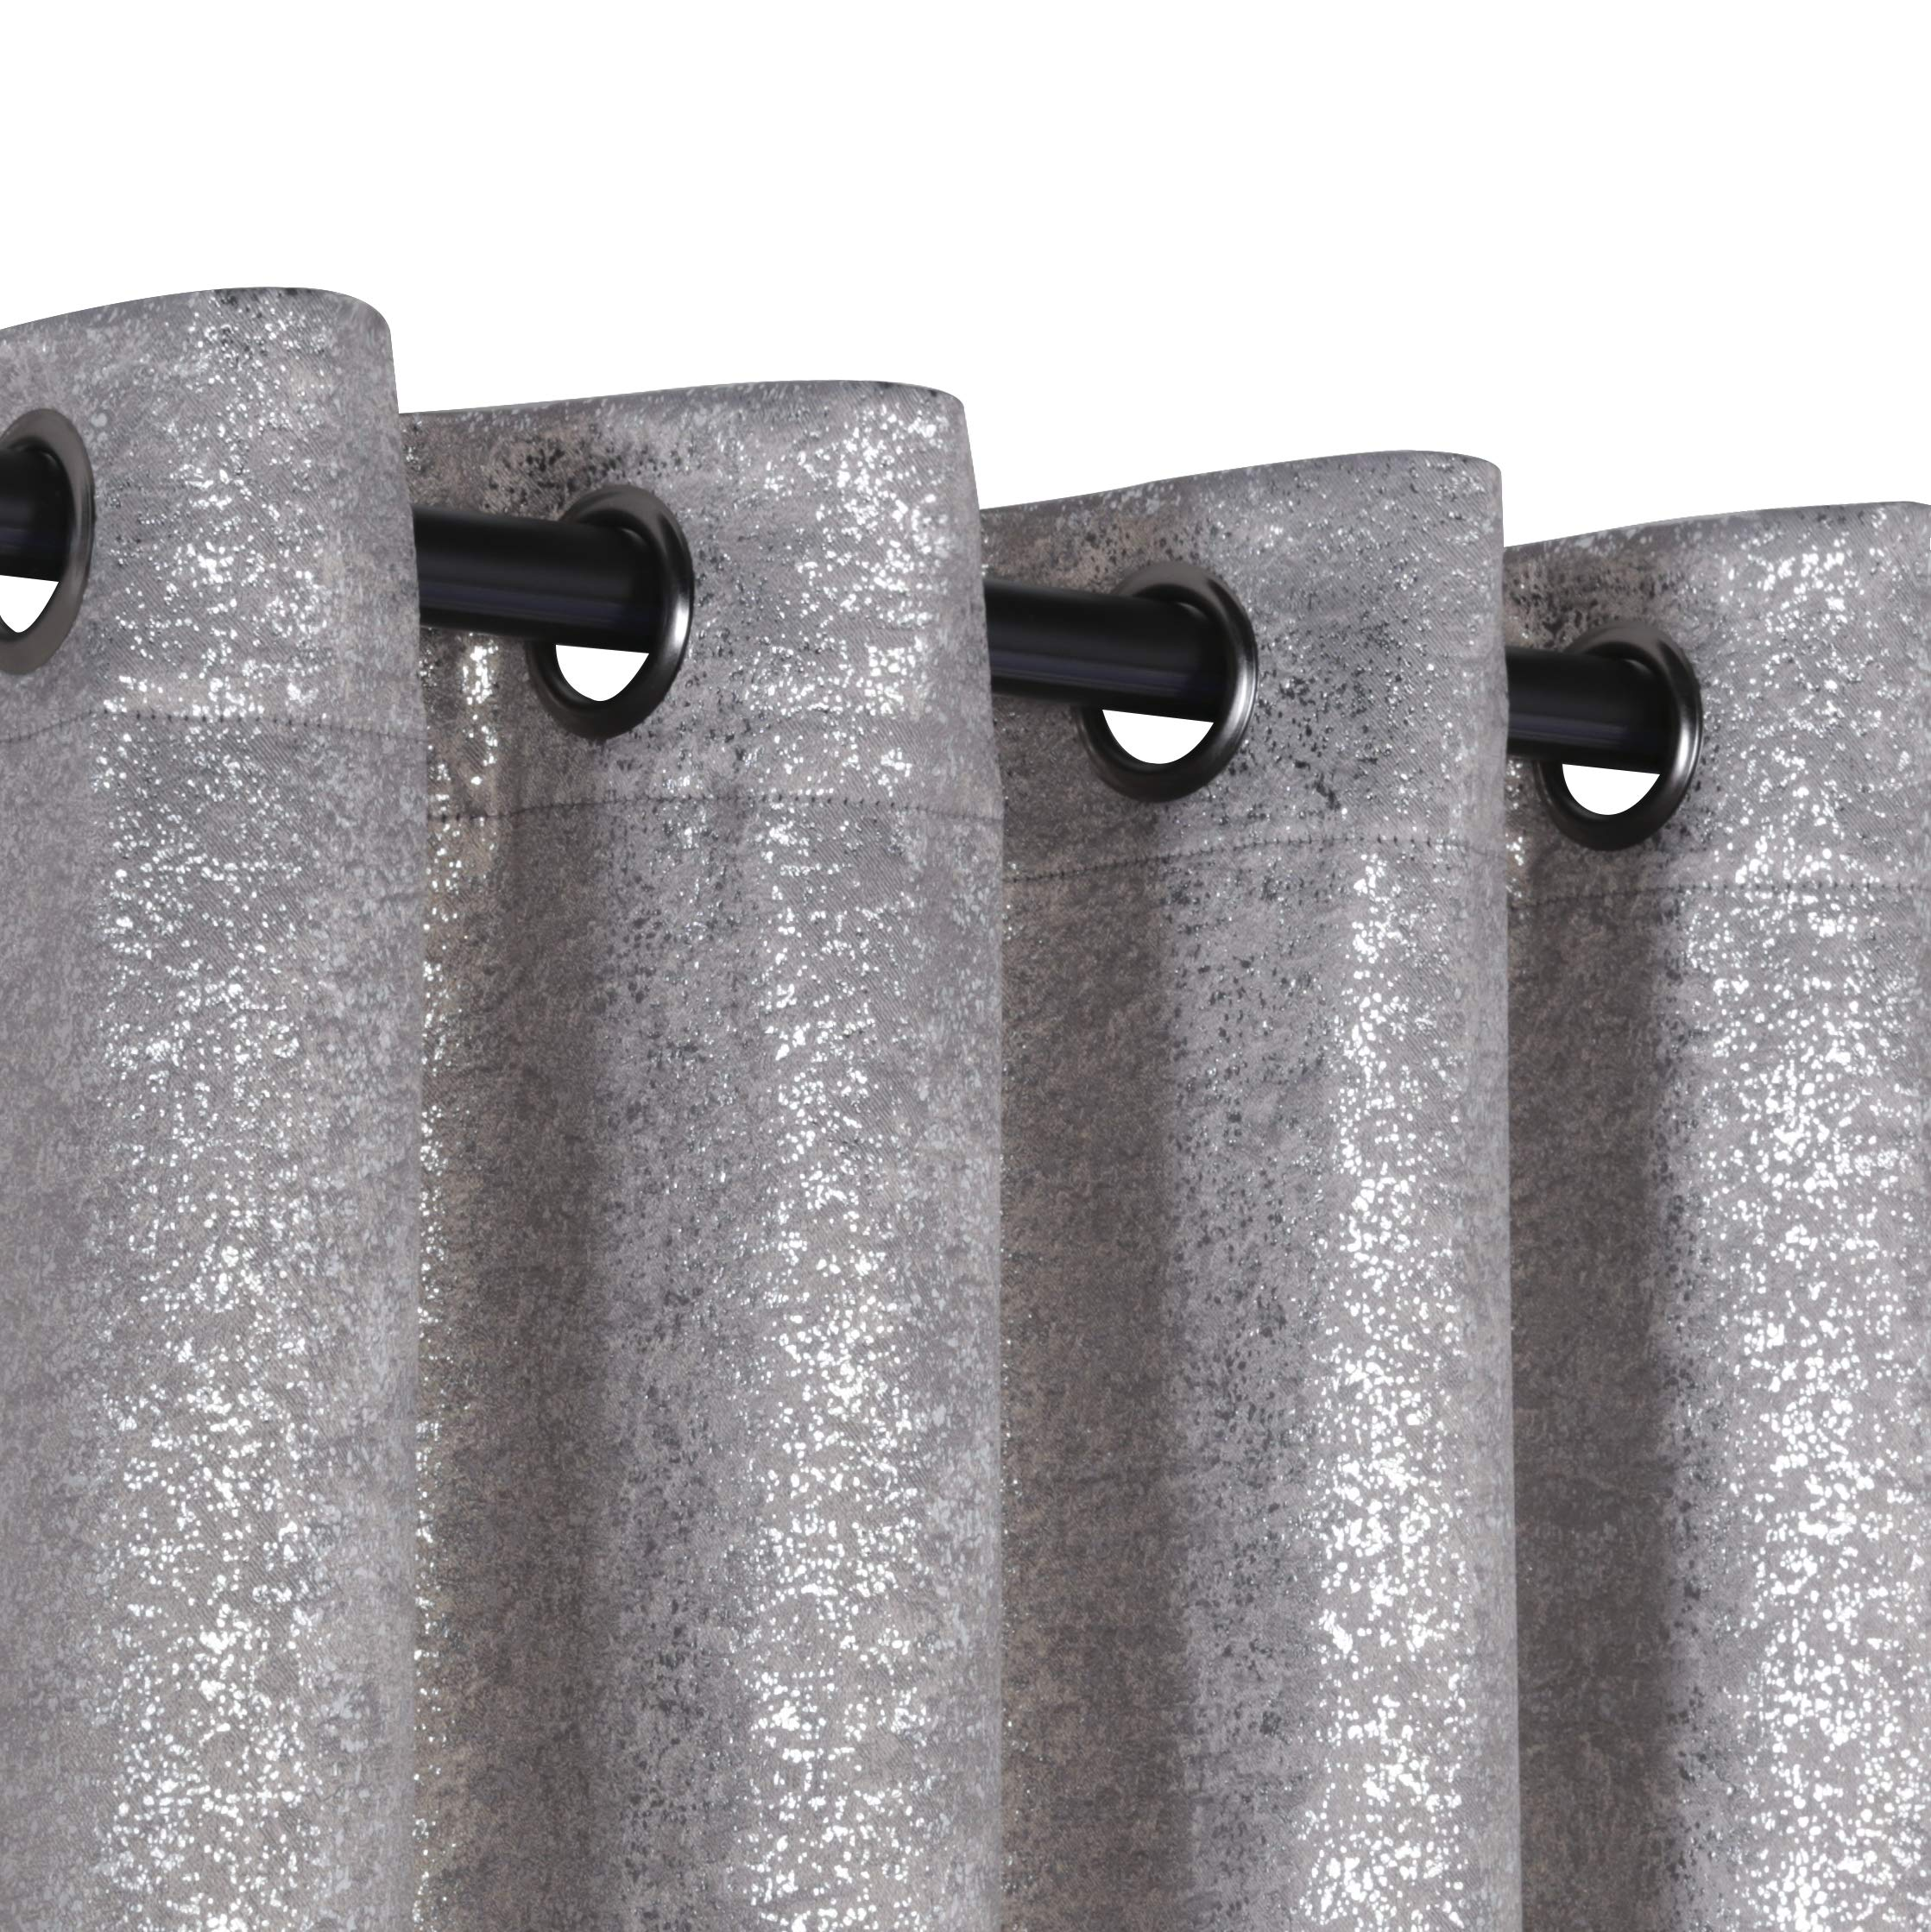 GoodGram 2 Pack Sparkle Chic Thermal Blackout Curtain Panels - Assorted Colors (Grey) by GoodGram